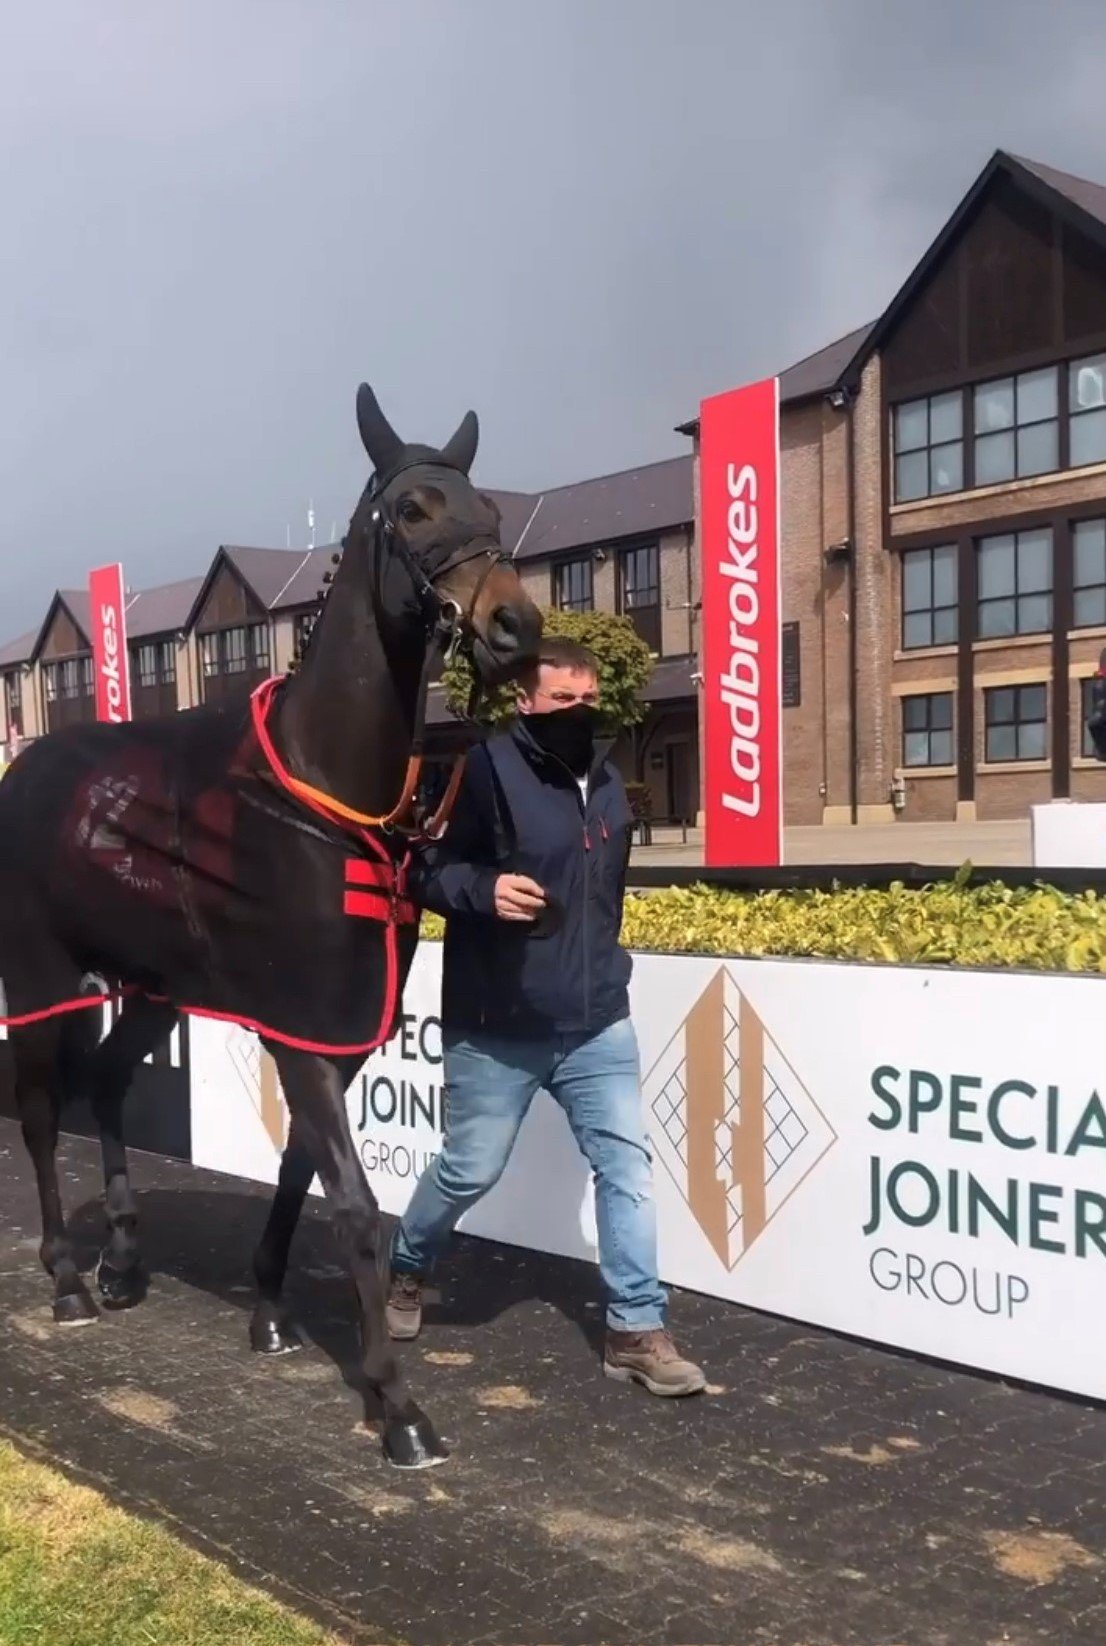 Specialist Joinery Group sponsor race at Punchestown Festival